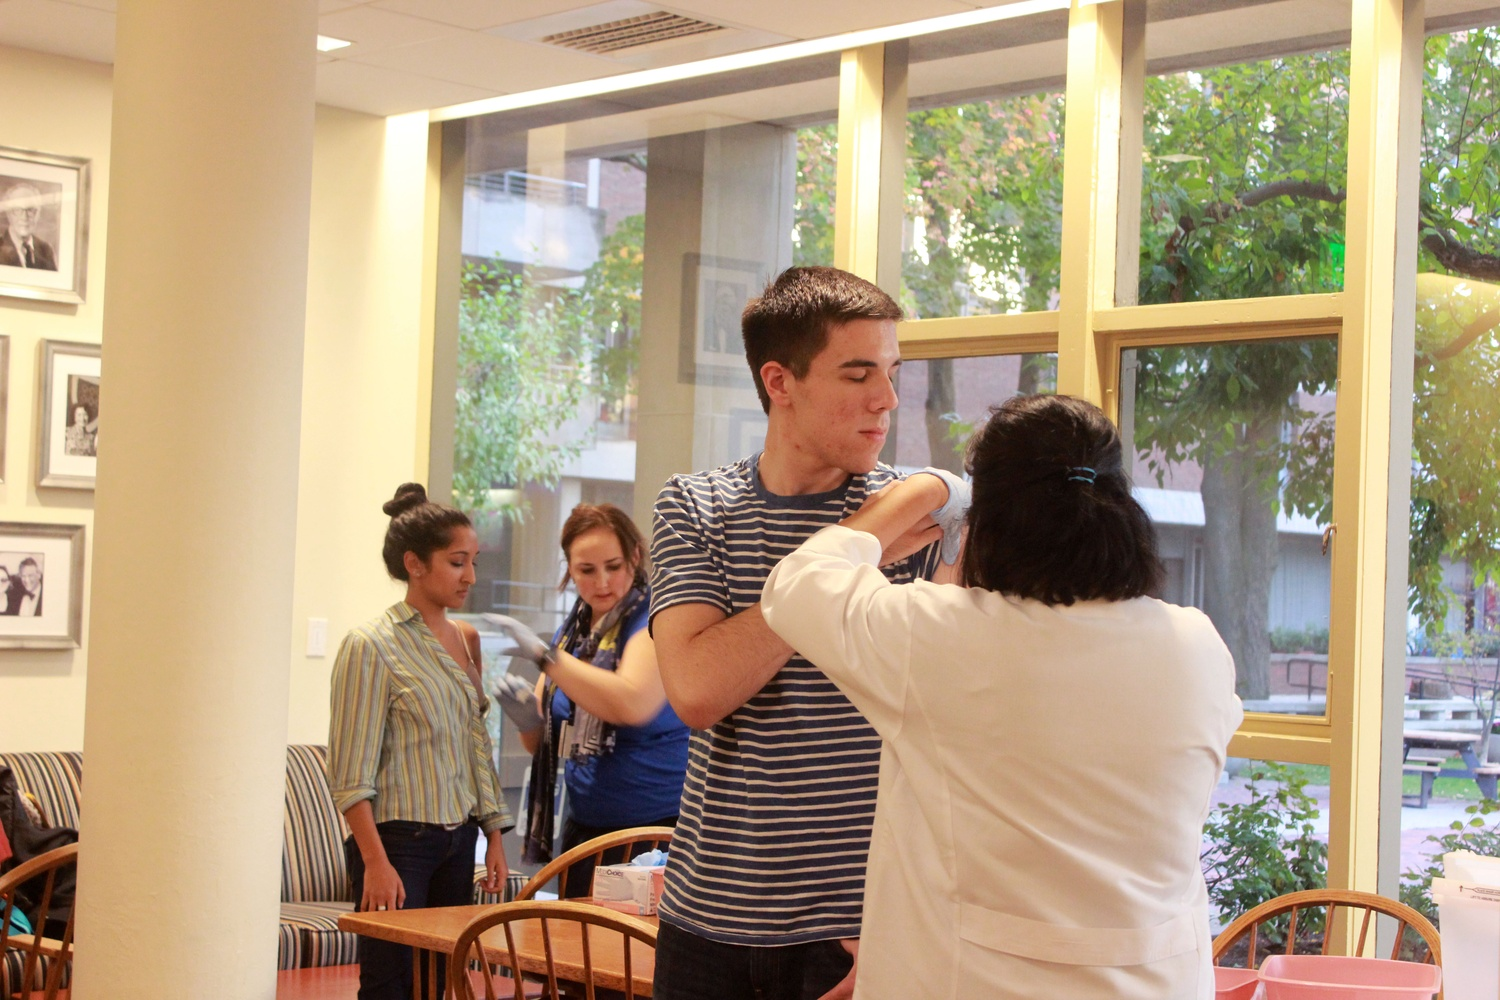 Steve A. Buschbach '16 braces for a flu shot in Quincy. Harvard HealthPals sponsored the event, which will occur at various locations around campus in the coming weeks.